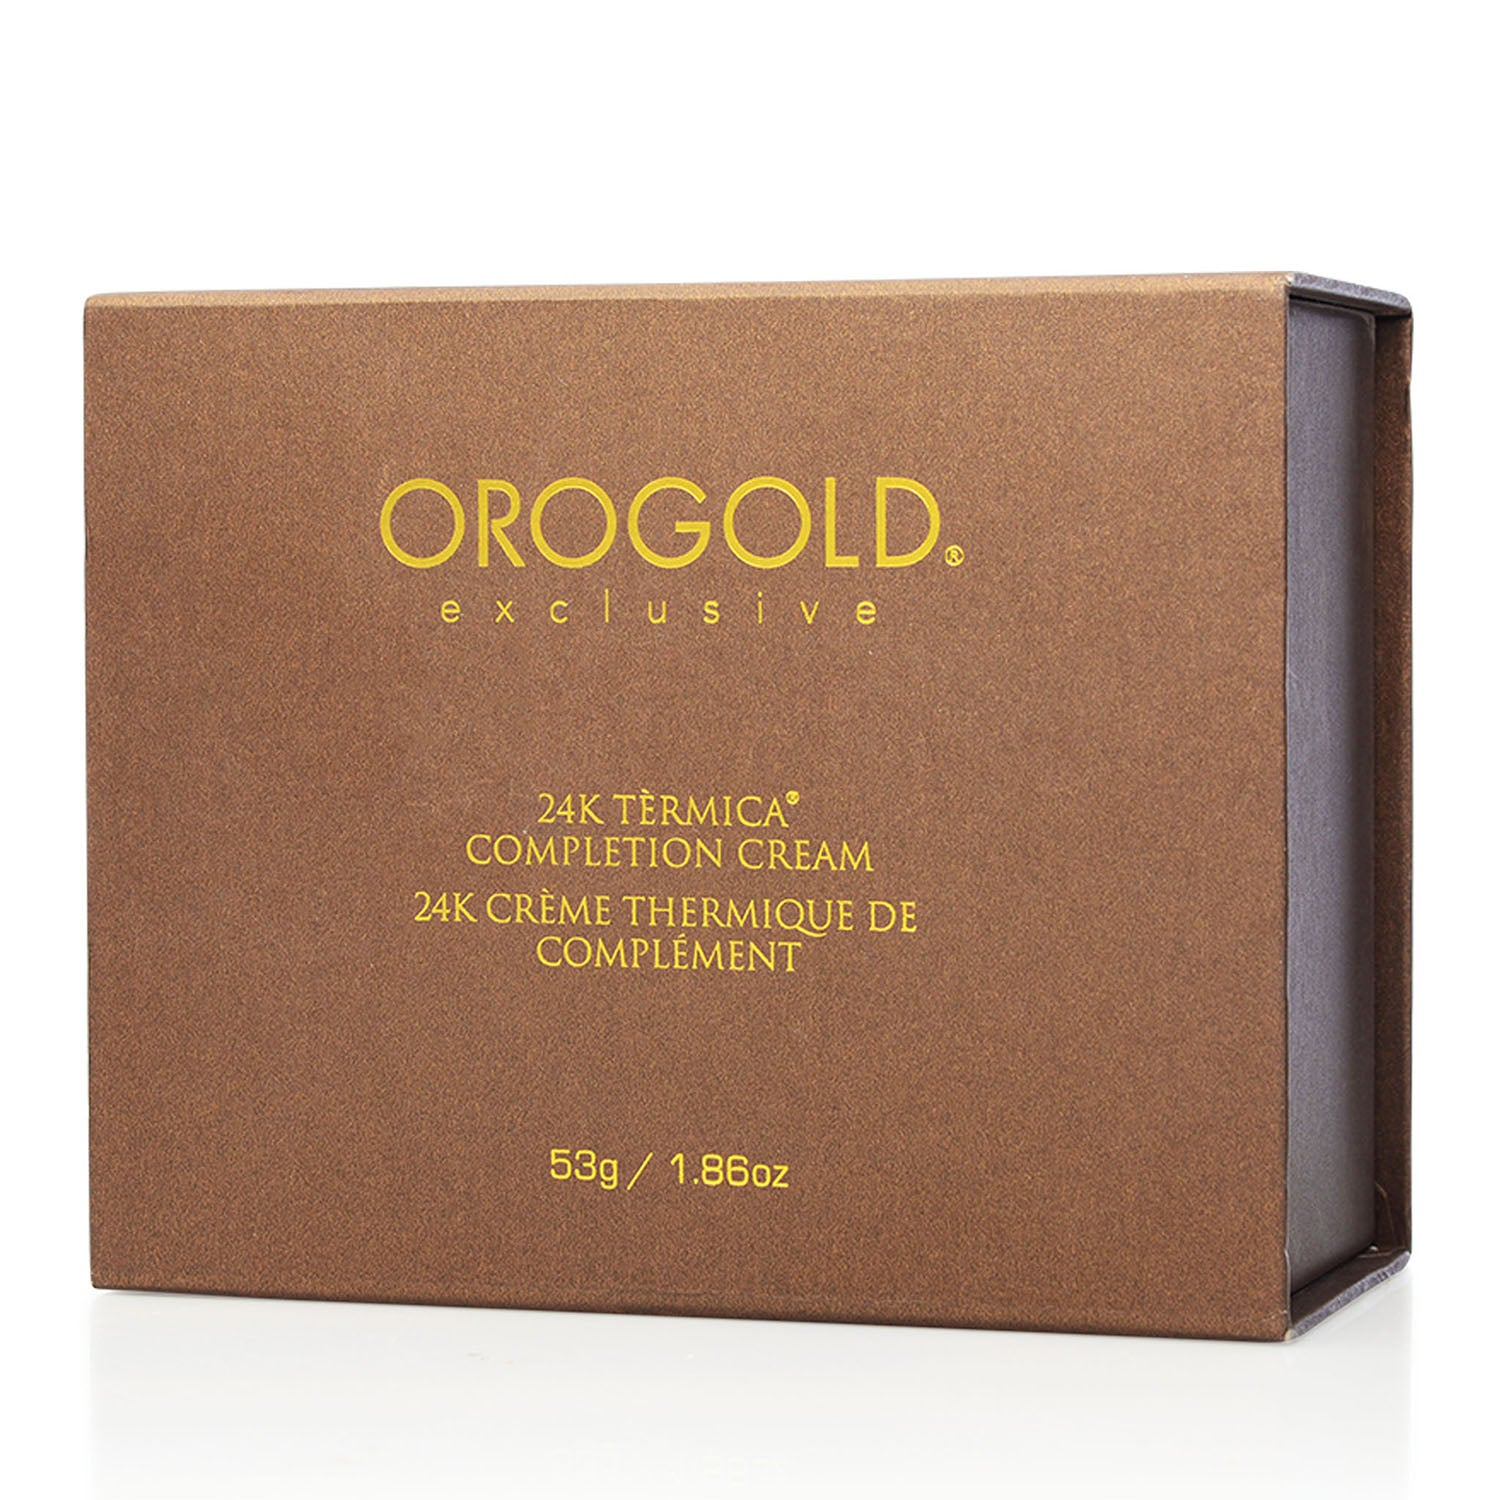 orogold 24k termica completion cream